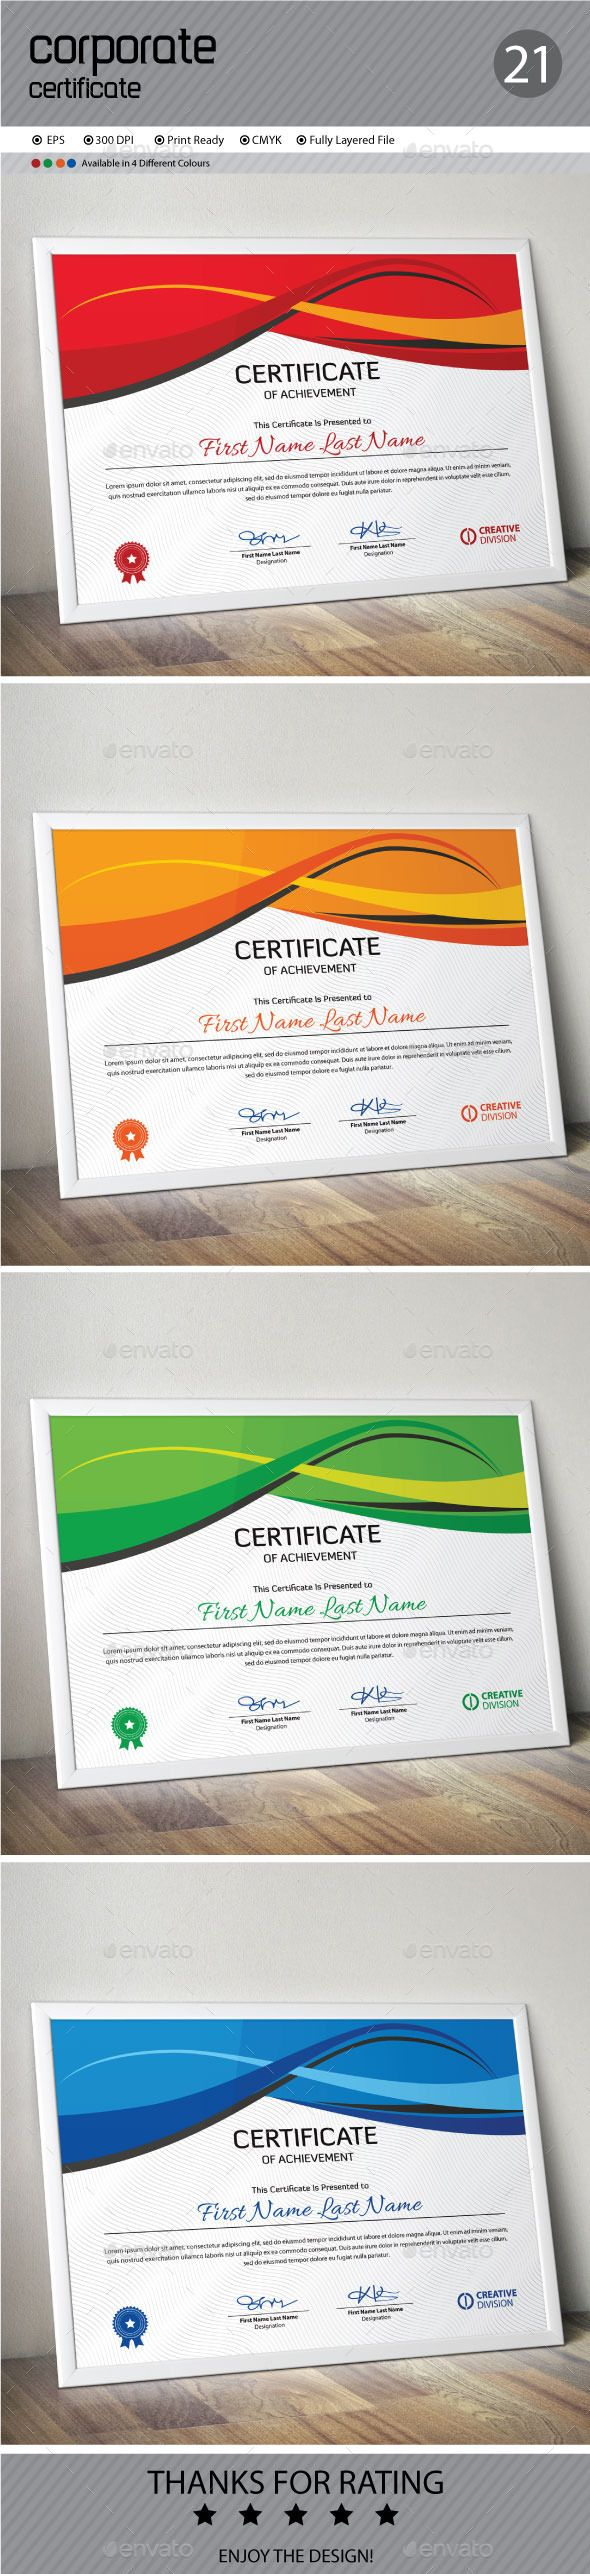 Certificate - Certificate Template Vector EPS. Download here: http://graphicriver.net/item/certificate/12839922?s_rank=144&ref=yinkira